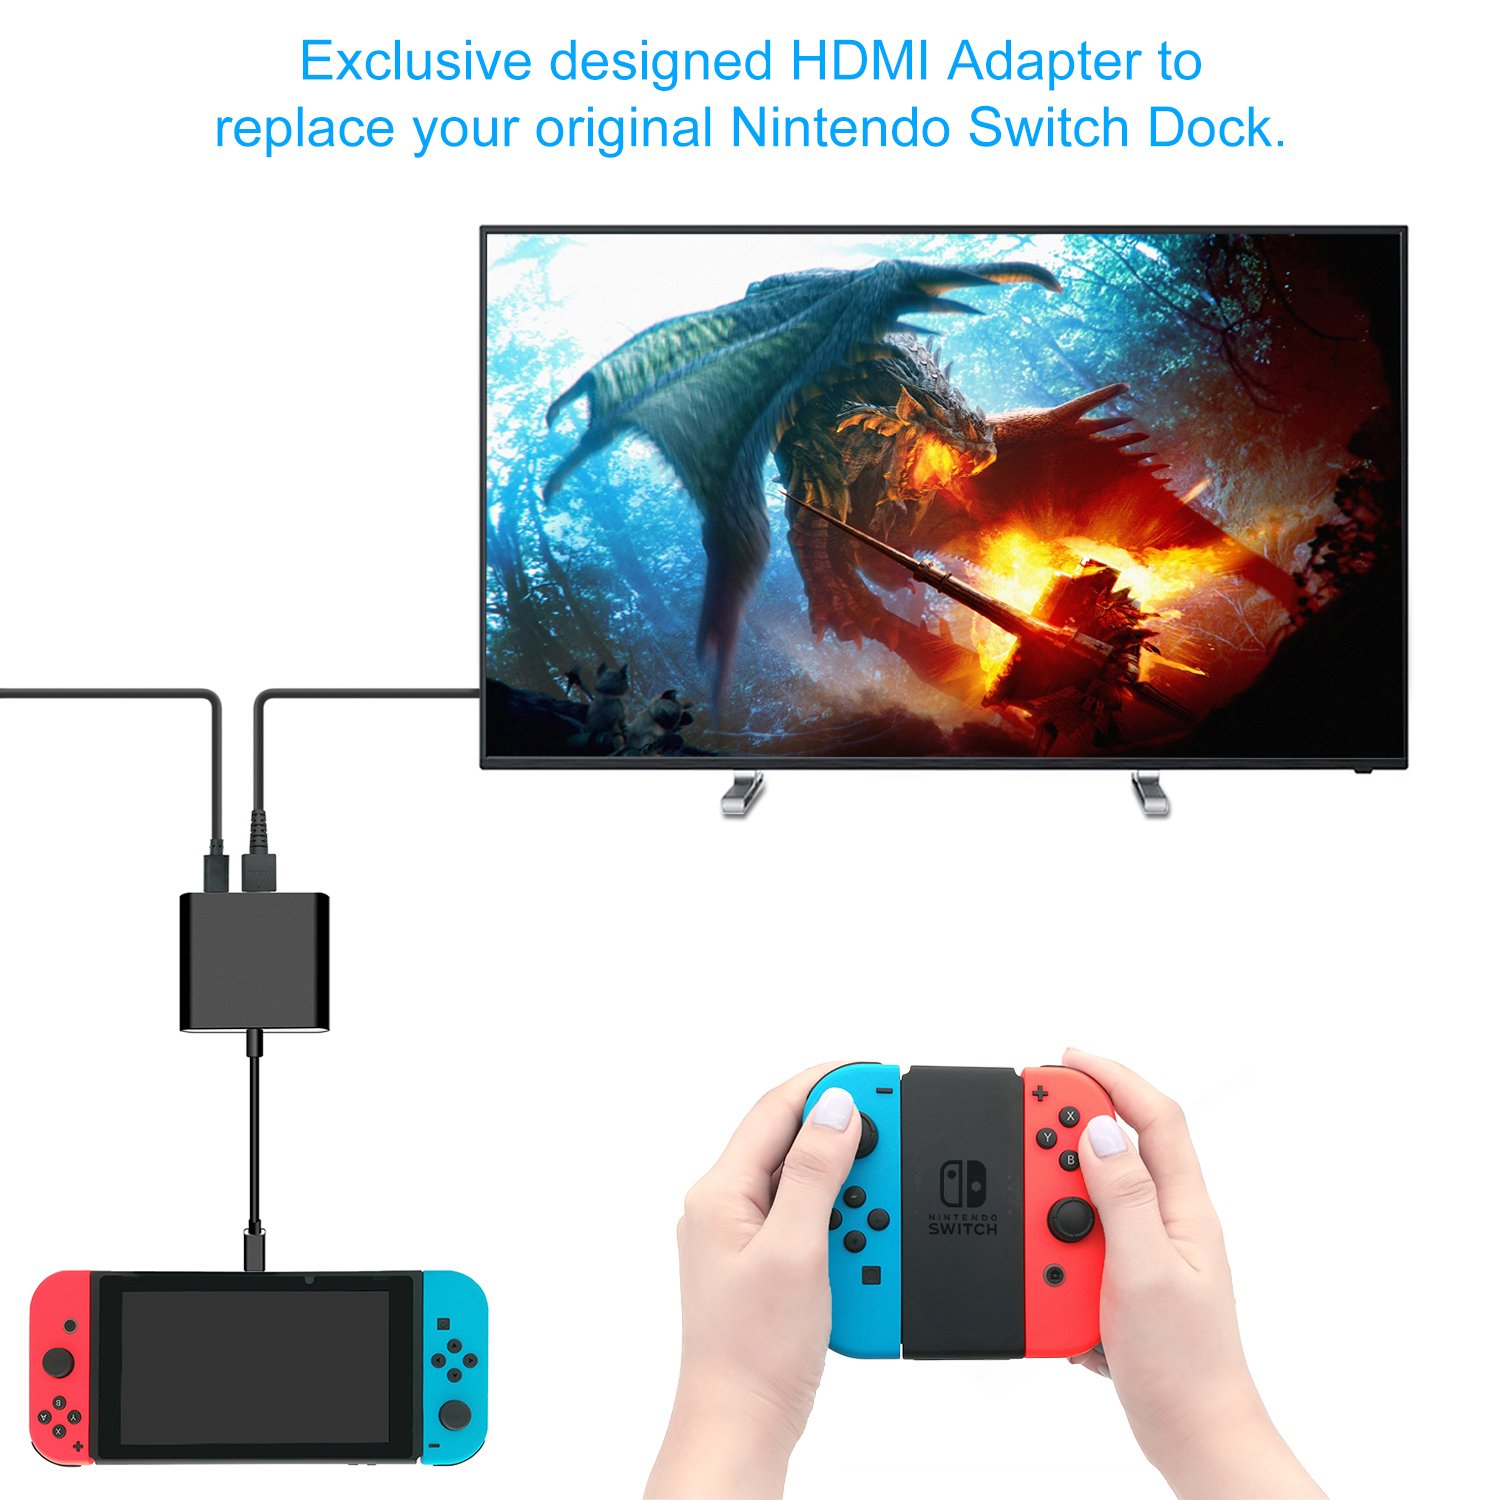 Fastsnail Hdmi Type C Hub Adapter For Nintendo Switch Home Wiring Diagram Smart Converter Dock Cable Black Computers Accessories